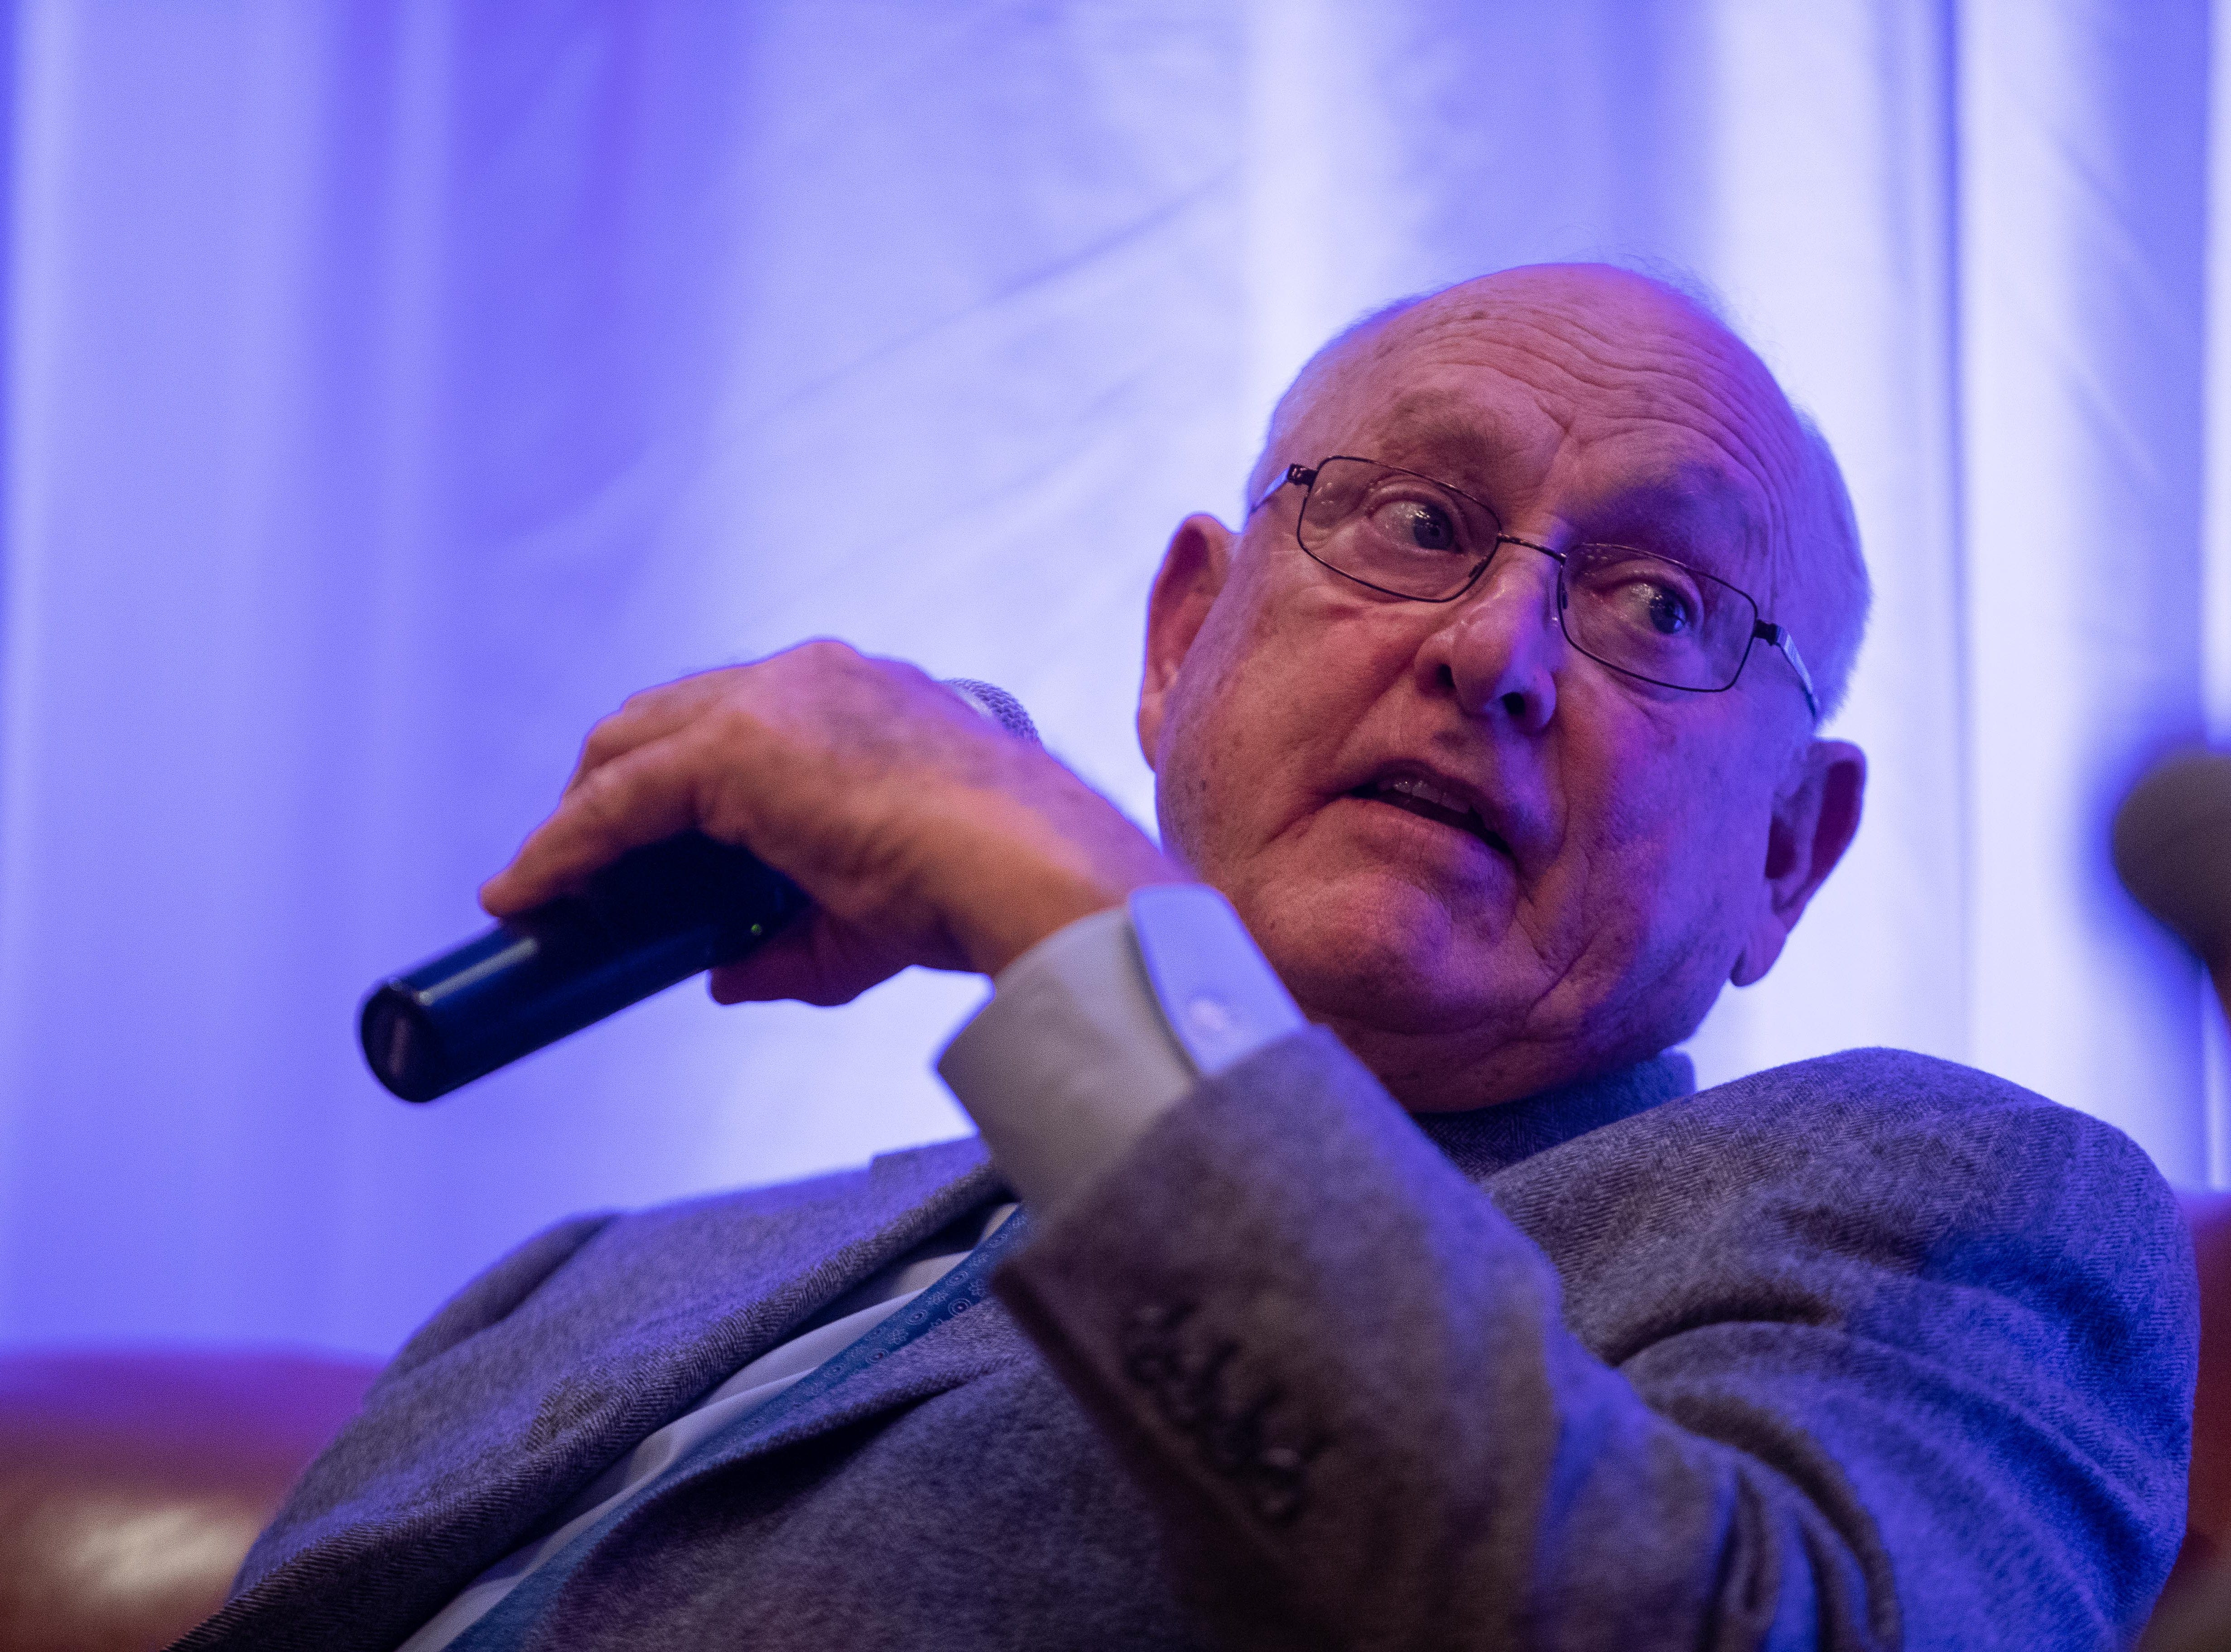 Nolan Ryan talks about Don Sanders during the Hooks South Texas Baseball Banquet at the Omni Hotel on Thursday, Jan. 24, 2019.